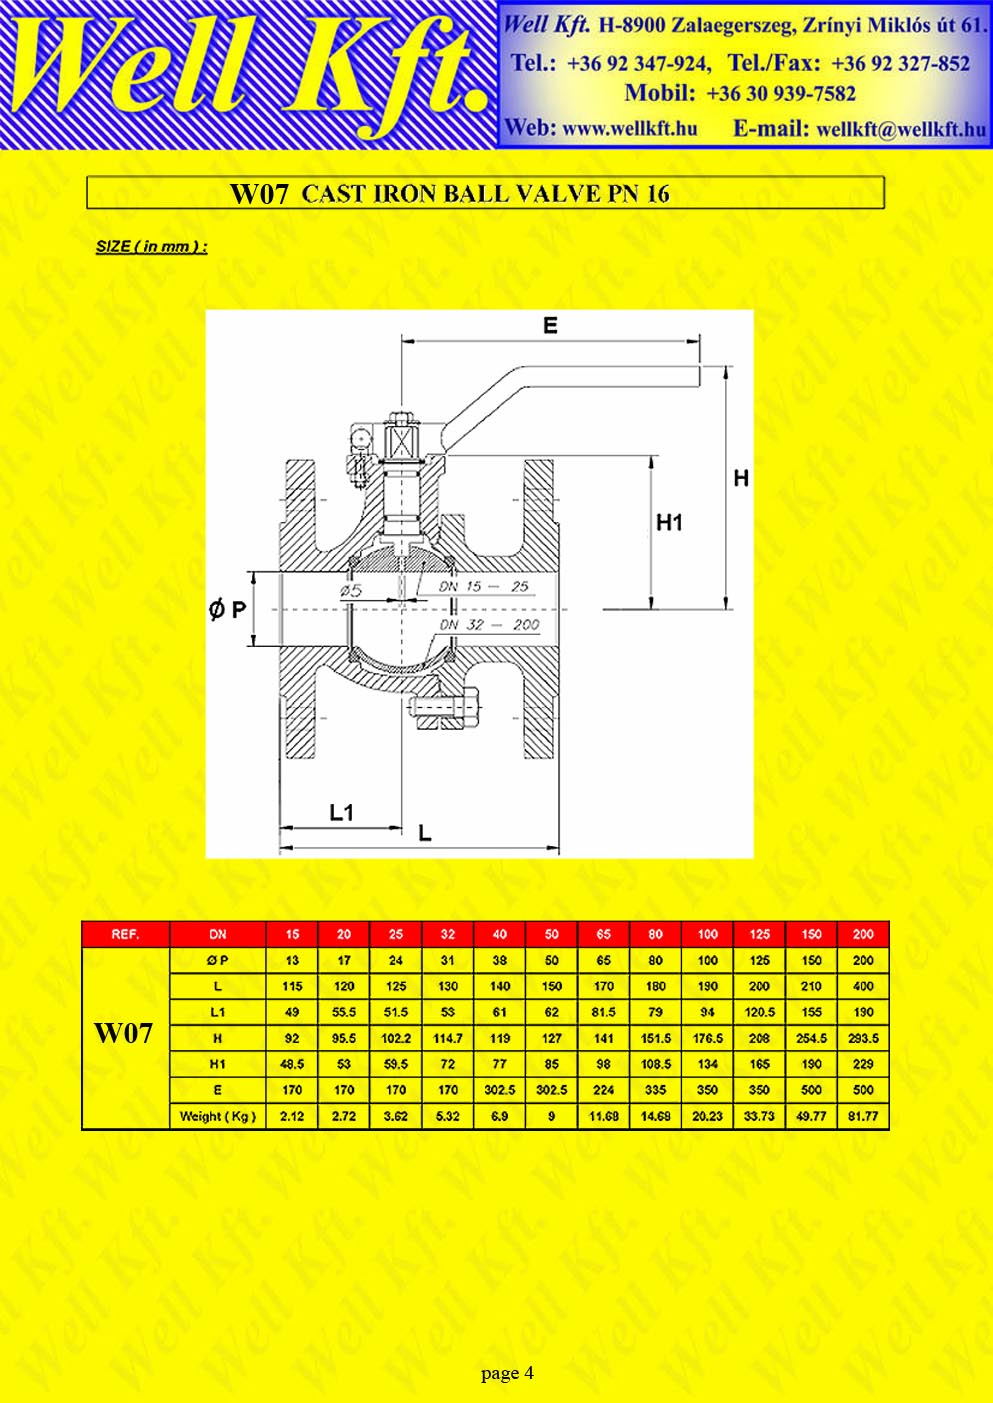 Ball valve 2 pieces cast iron ISO pad PN 16  (4.)